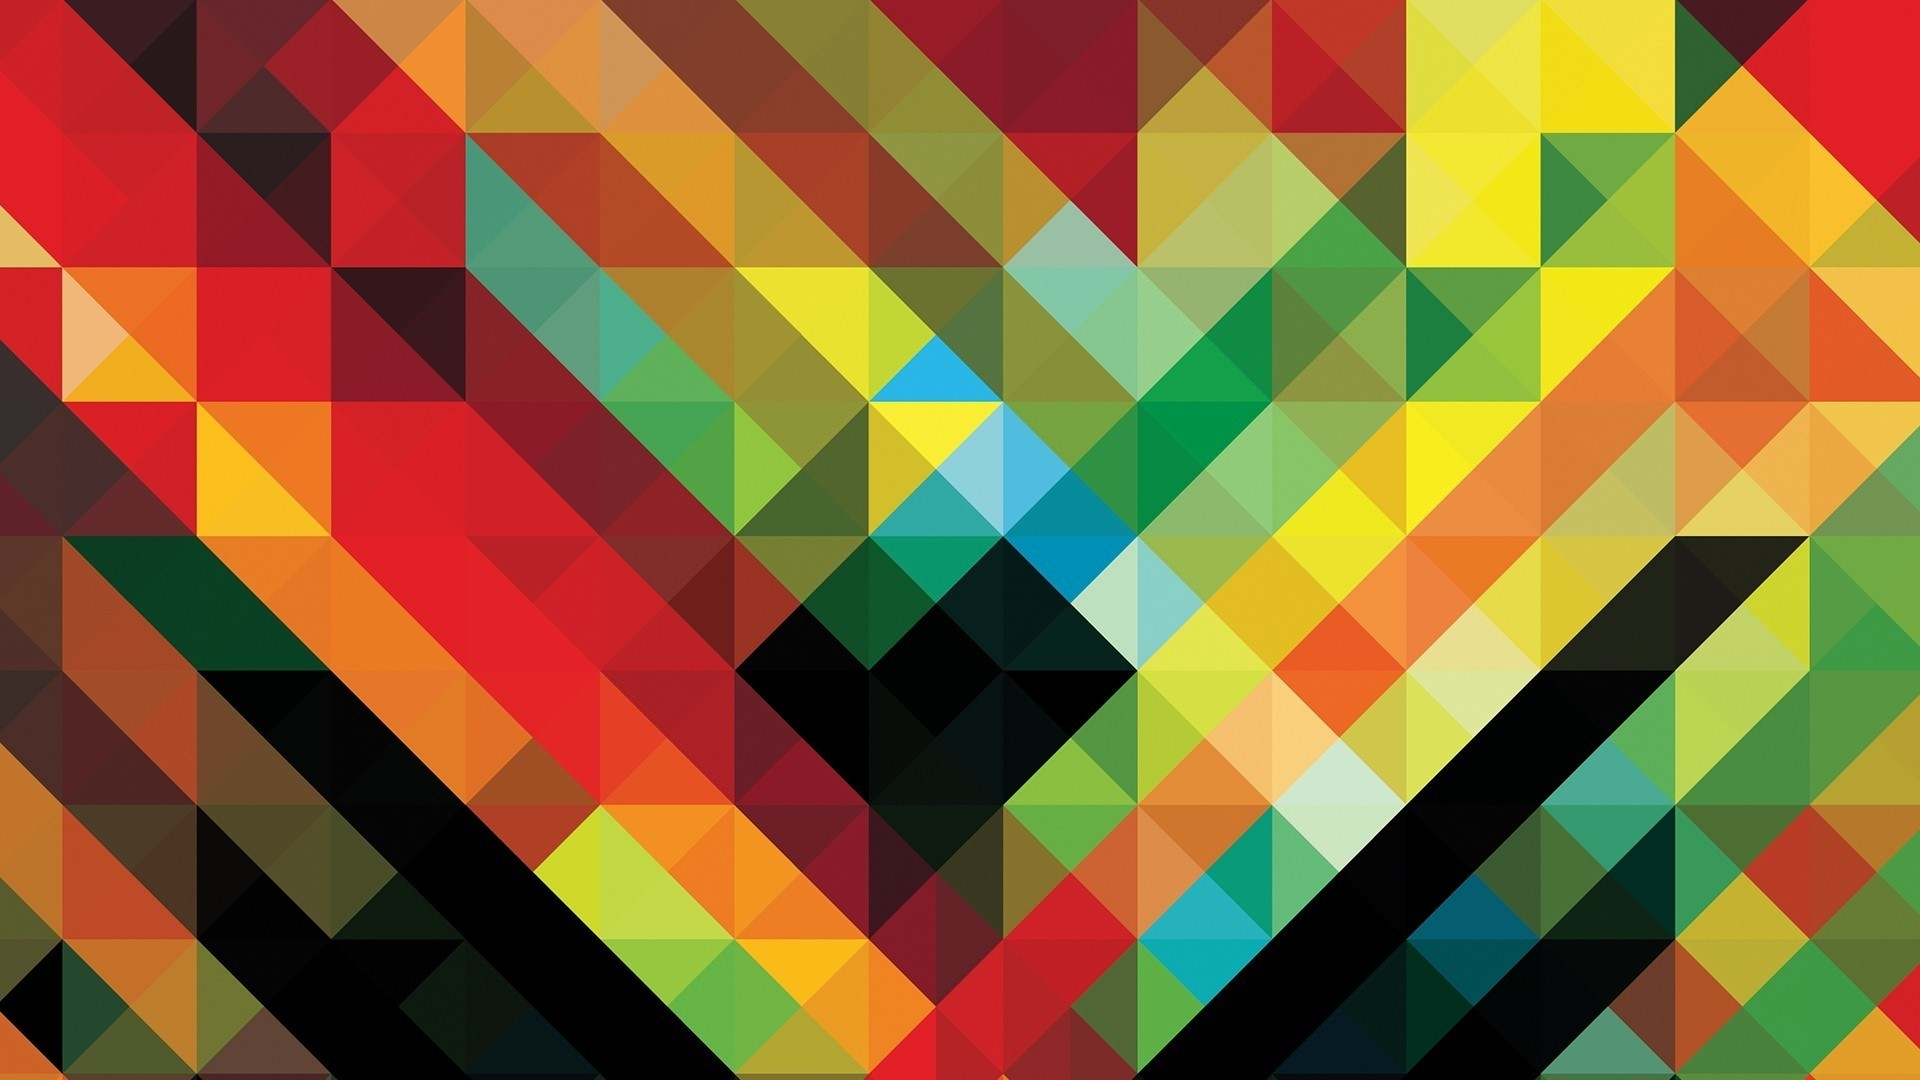 Geometric Free Wallpaper and Background